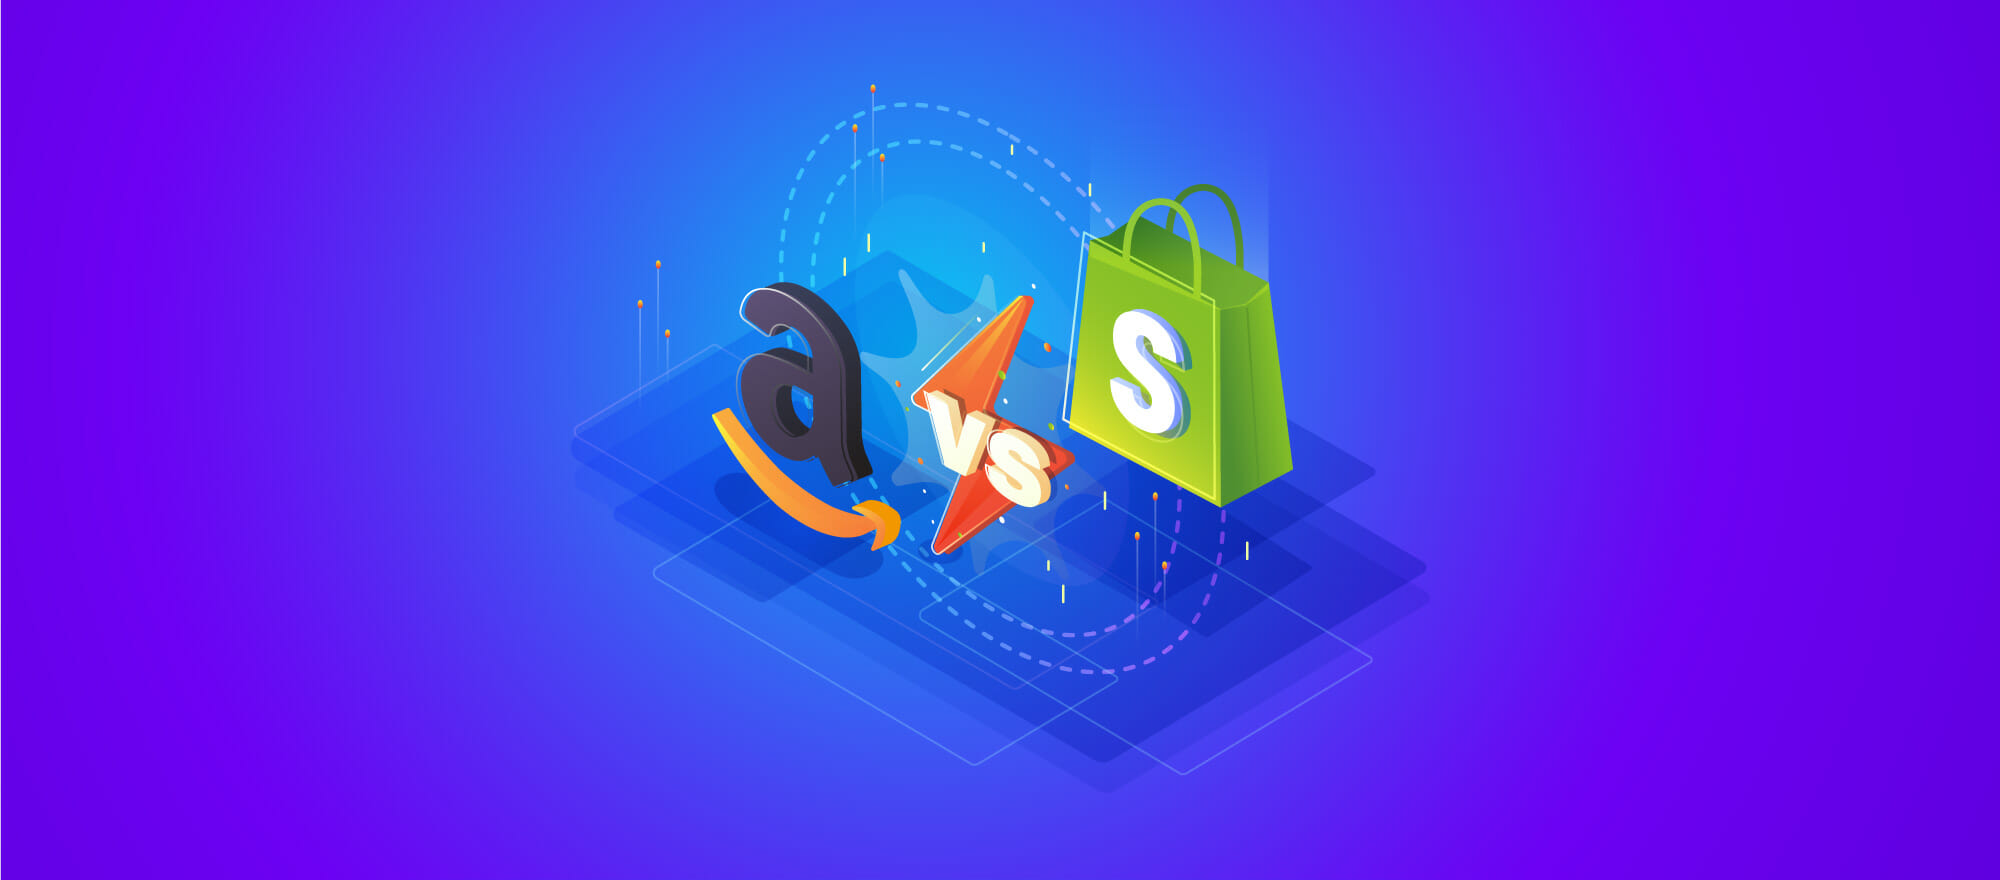 Shopify Vs Amazon: Which eCommerce Platform Should You Use?